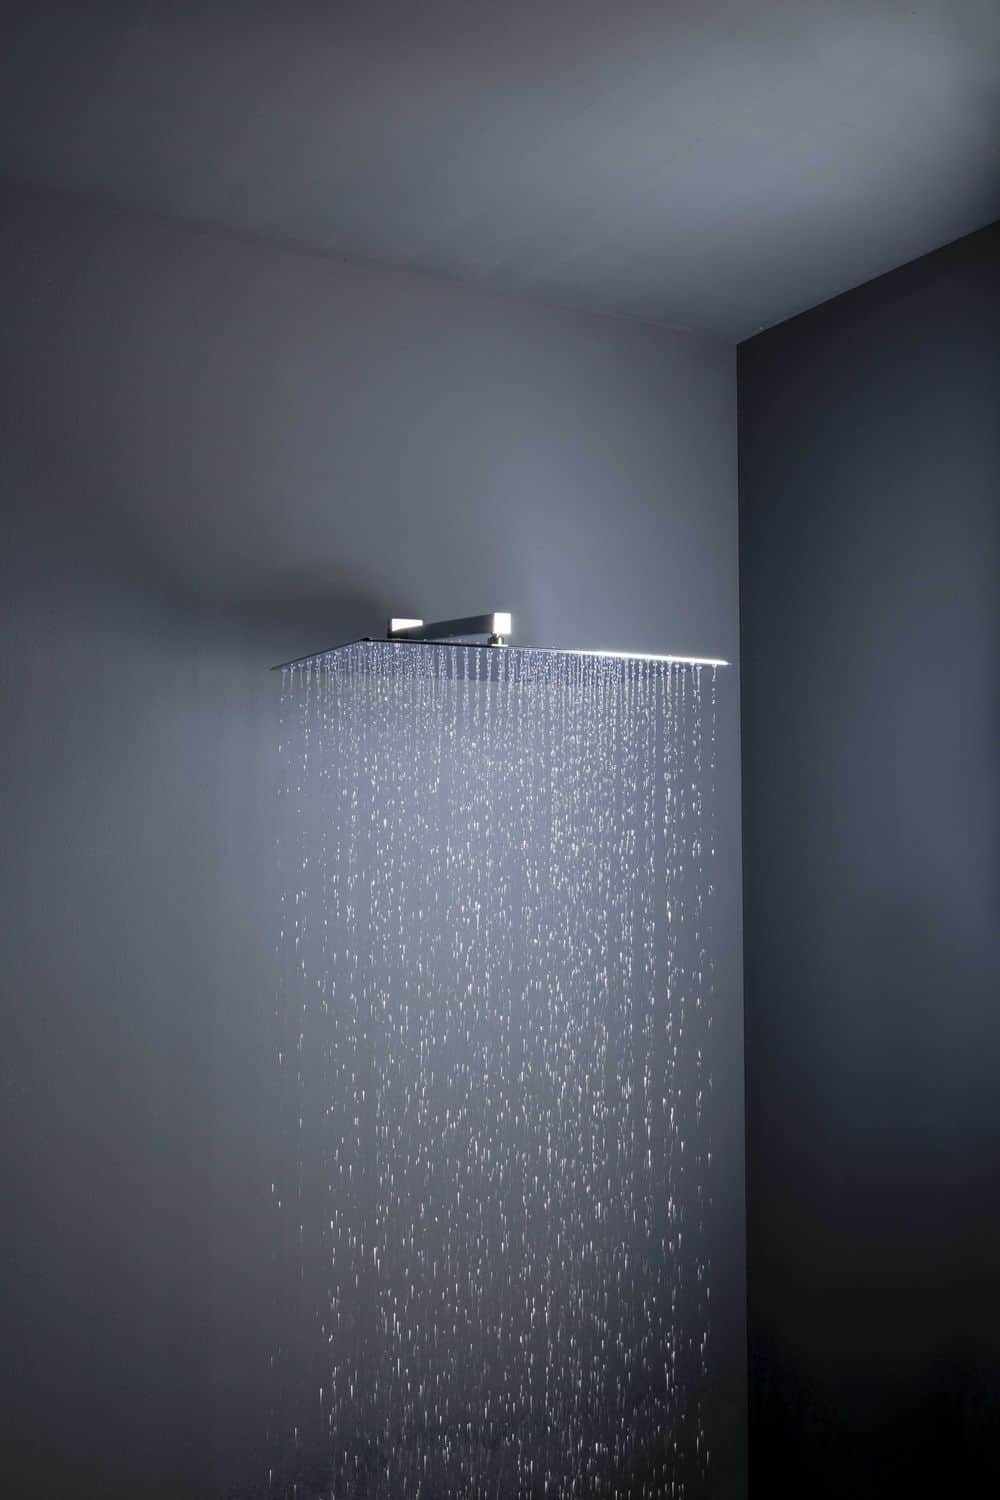 These Extra Large Showerheads Come In Square Or Round Shapes And Create A  Comfort Rain Effect.